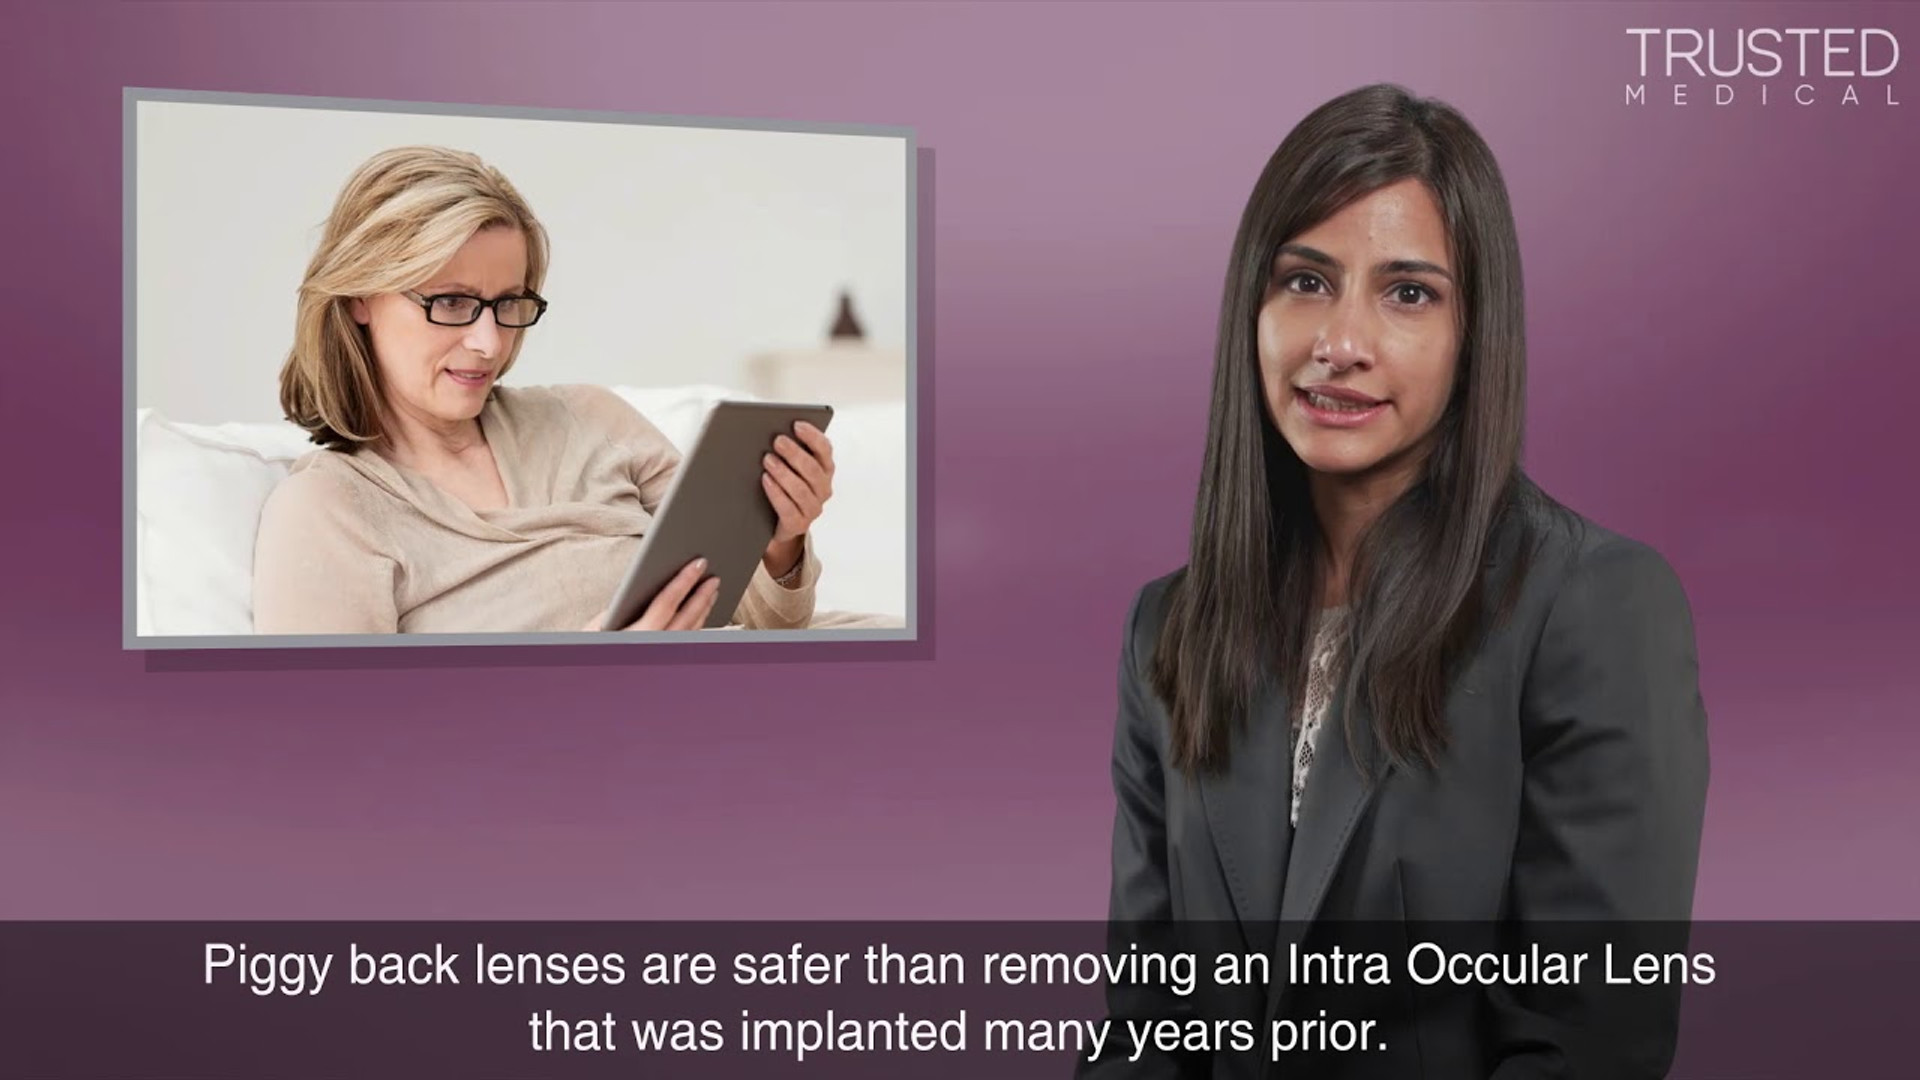 What are piggyback lenses and who is suitable for them?